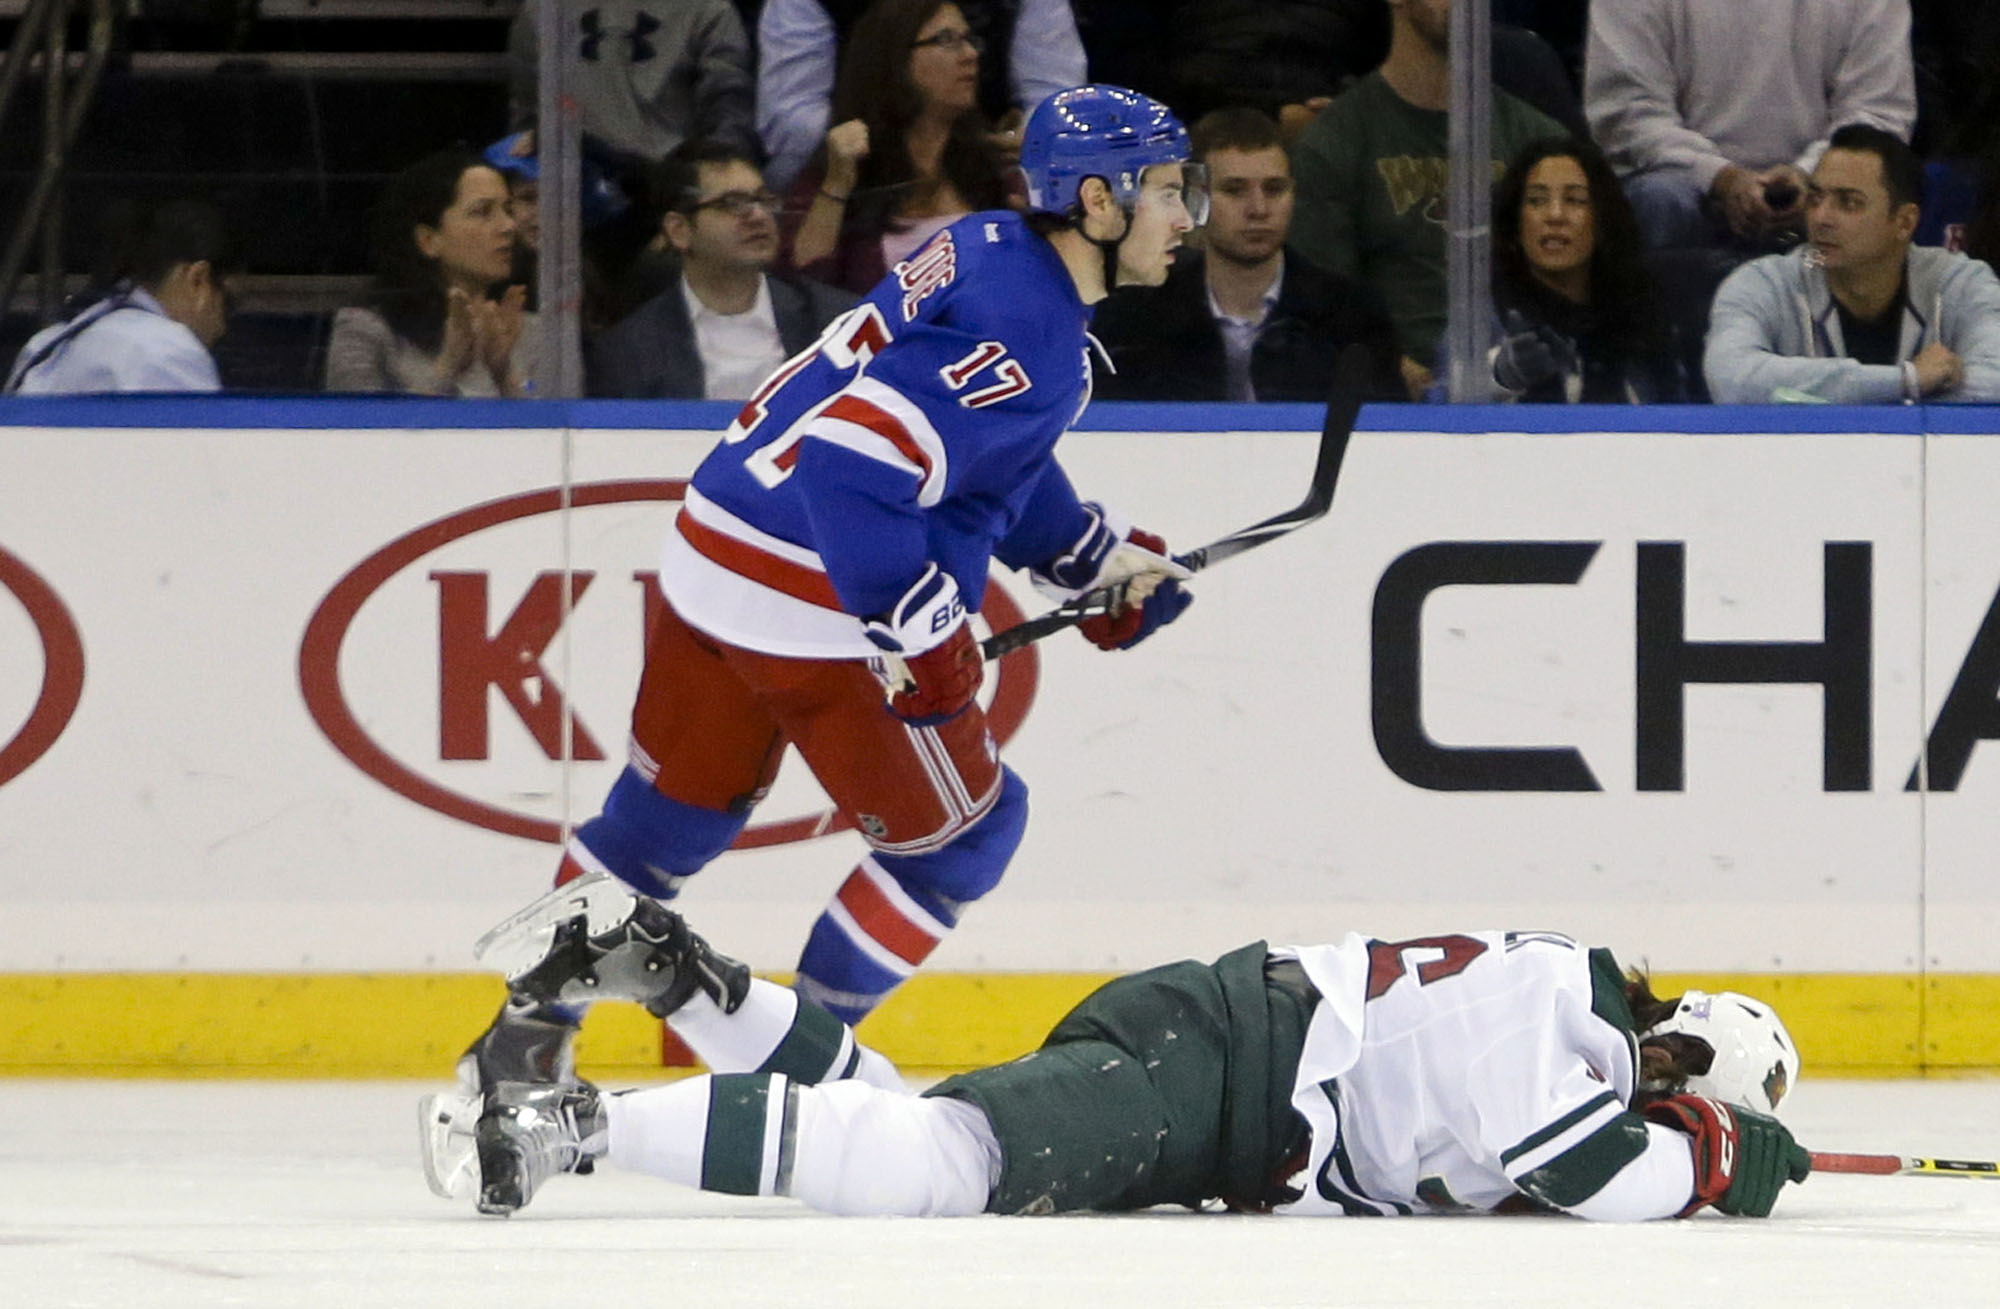 Minnesota Wild's Erik Haula, bottom, holds his head after being hit by New York Rangers' John Moore (17) during the second period of an NHL hockey game Monday, Oct. 27, 2014, in New York. Moore was given a match penalty for the hit. (AP Photo/Frank Franklin II)